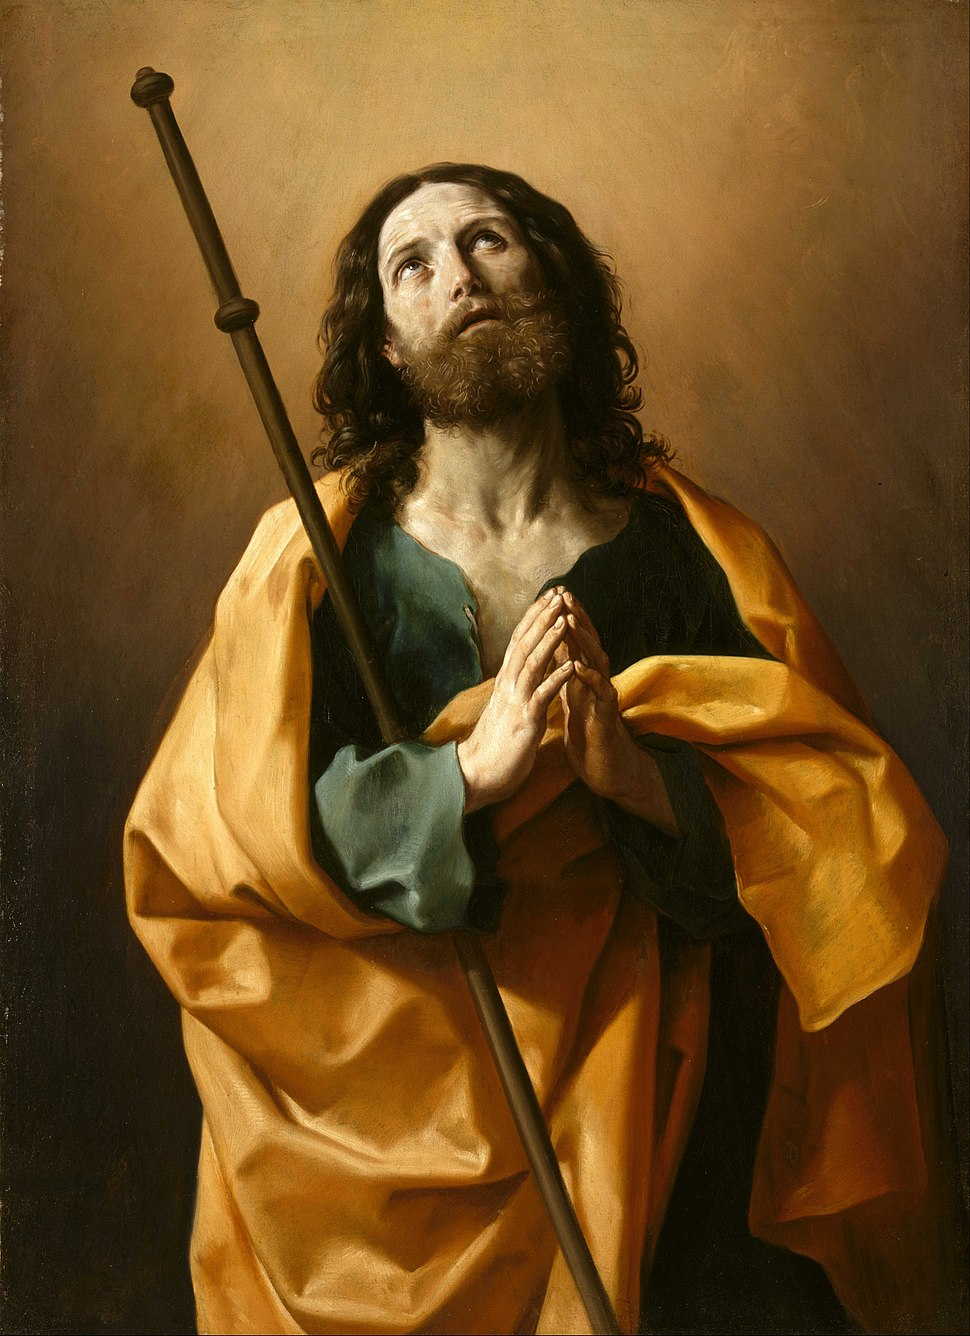 Guido Reni - Saint James the Greater - Google Art Project